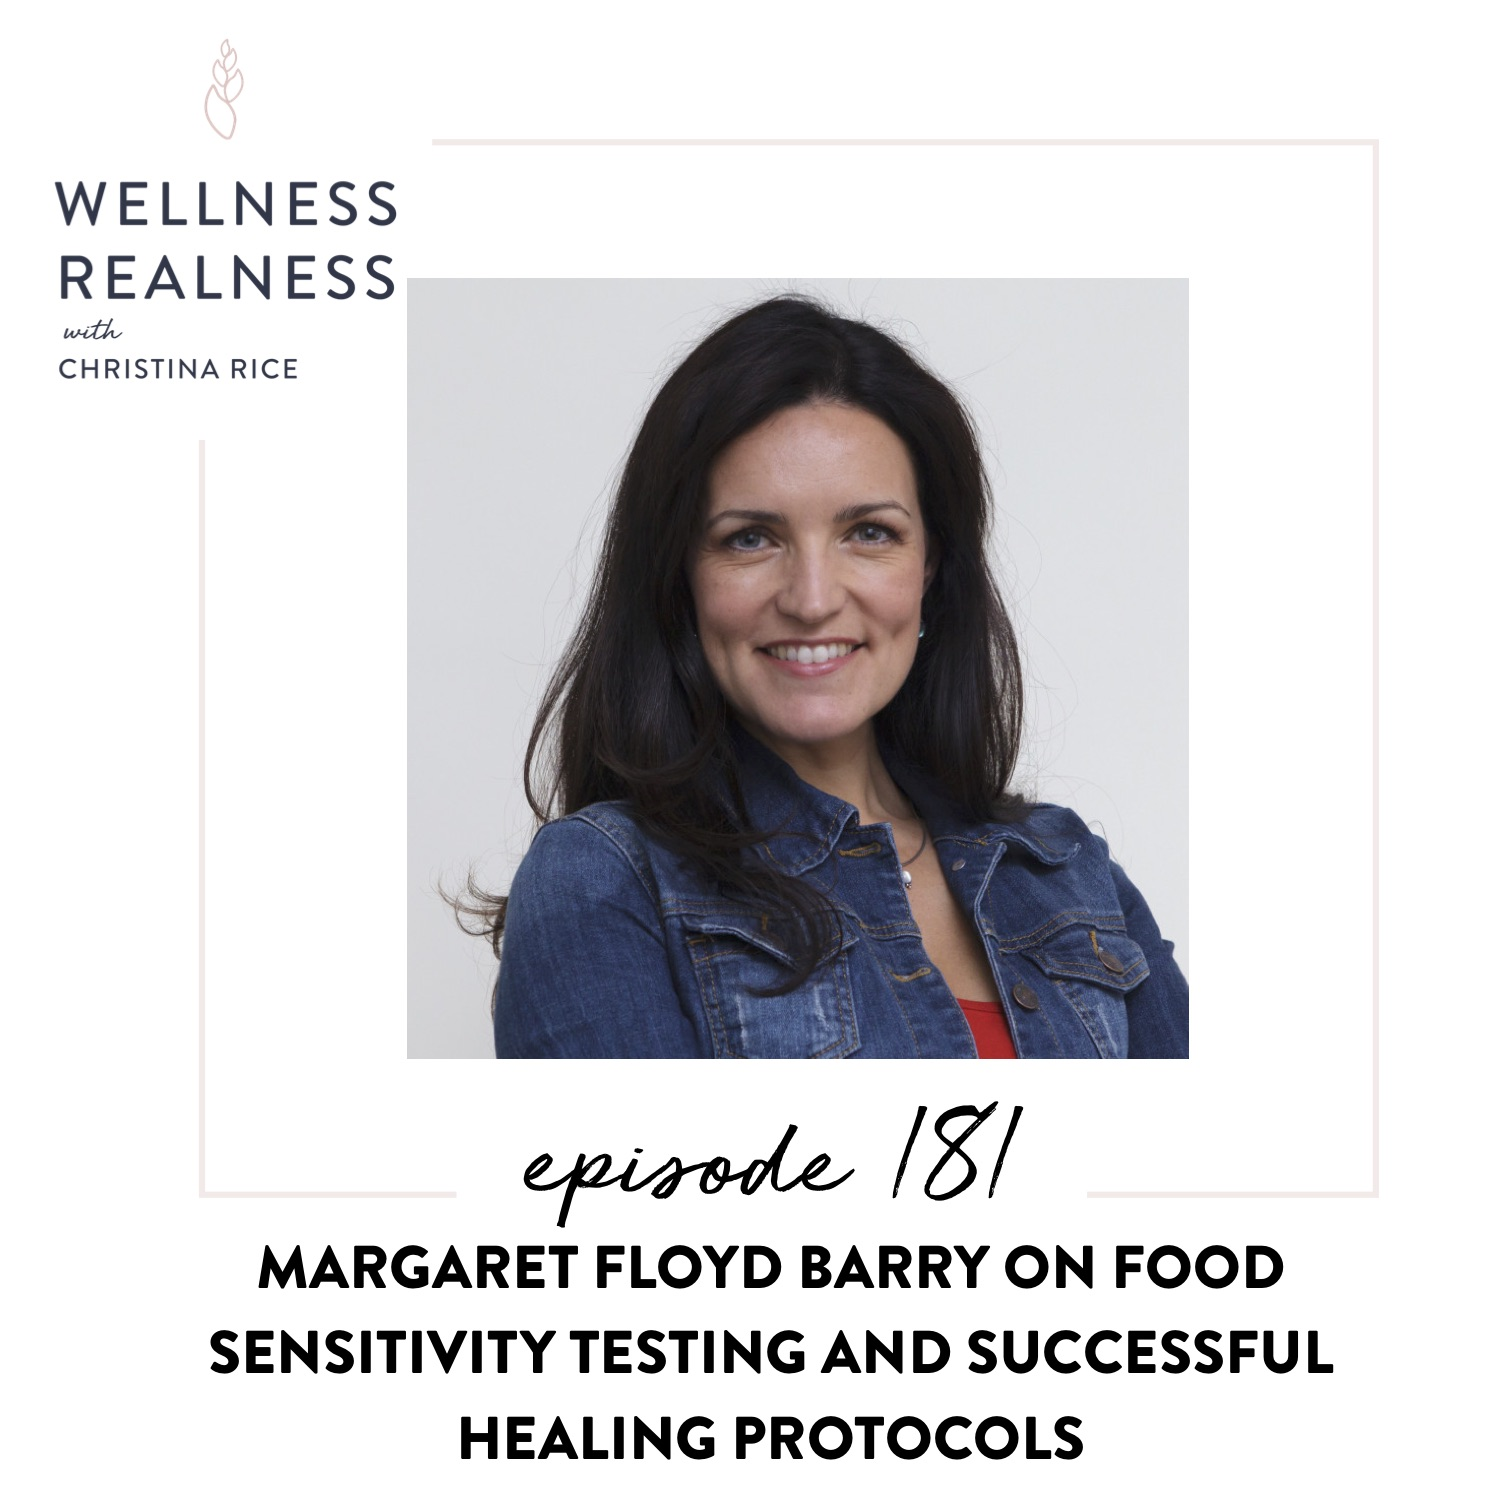 181: Margaret Floyd Barry on Food Sensitivity Testing and Successful Healing Protocols